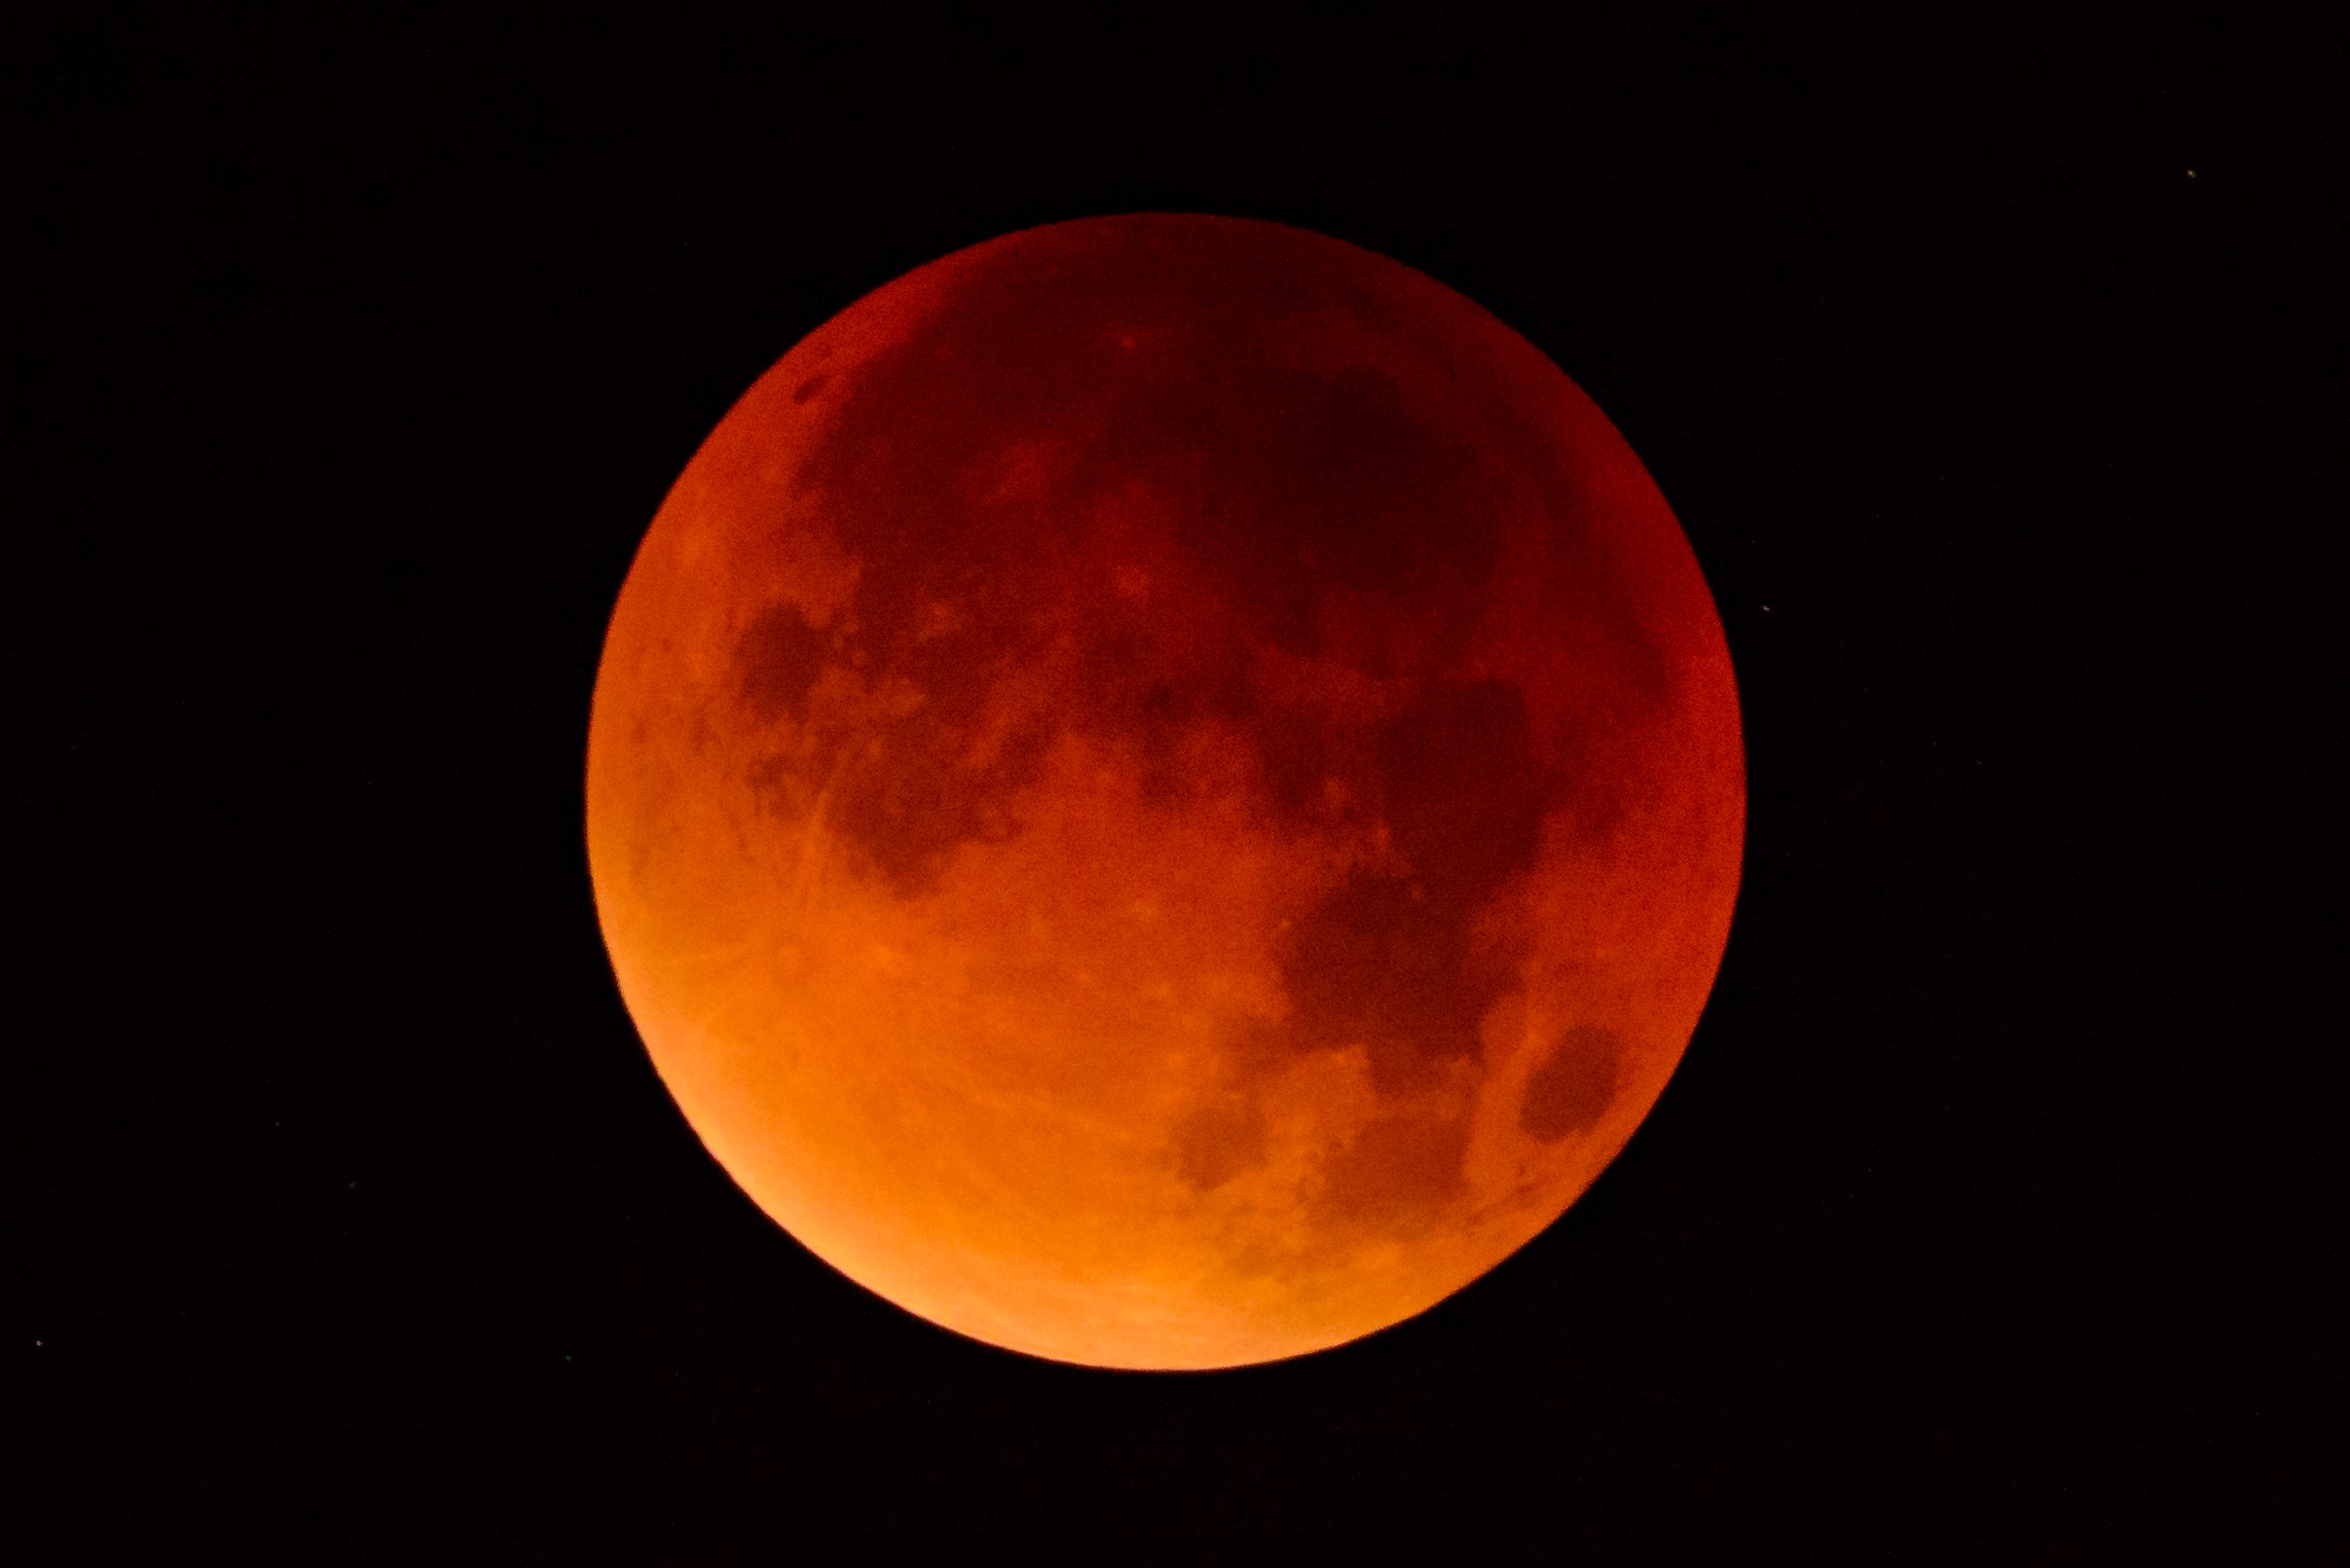 blood moon 2018 europe - photo #15